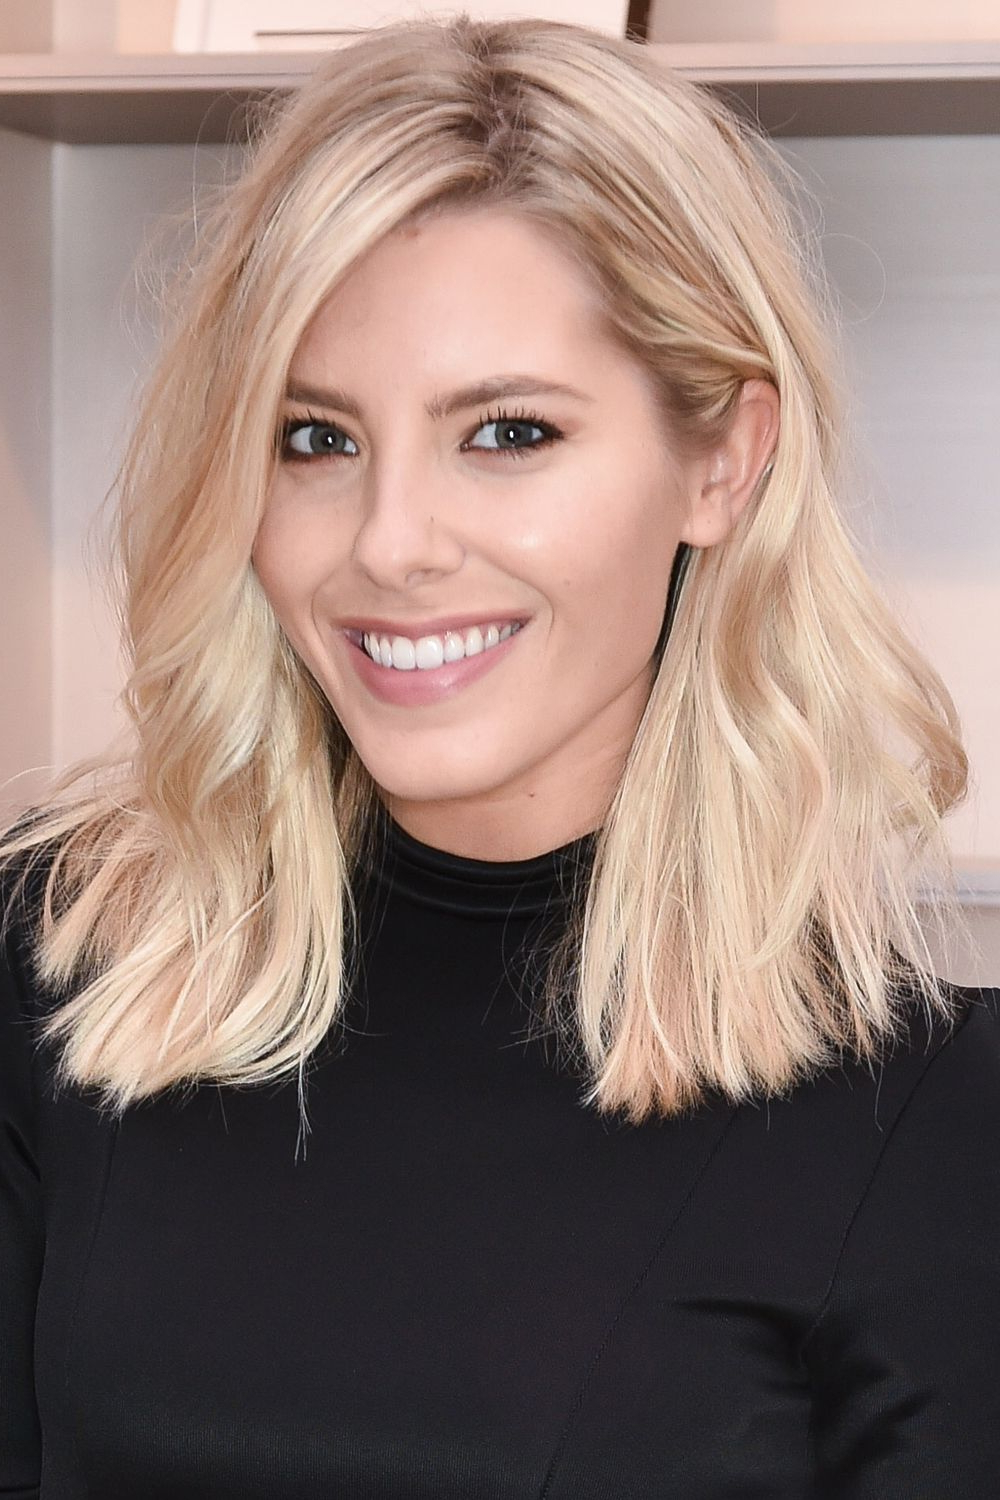 Short Hairstyles: Your A List Inspiration | Hair | Pinterest | Hair Intended For Strawberry Blonde Short Hairstyles (View 9 of 25)